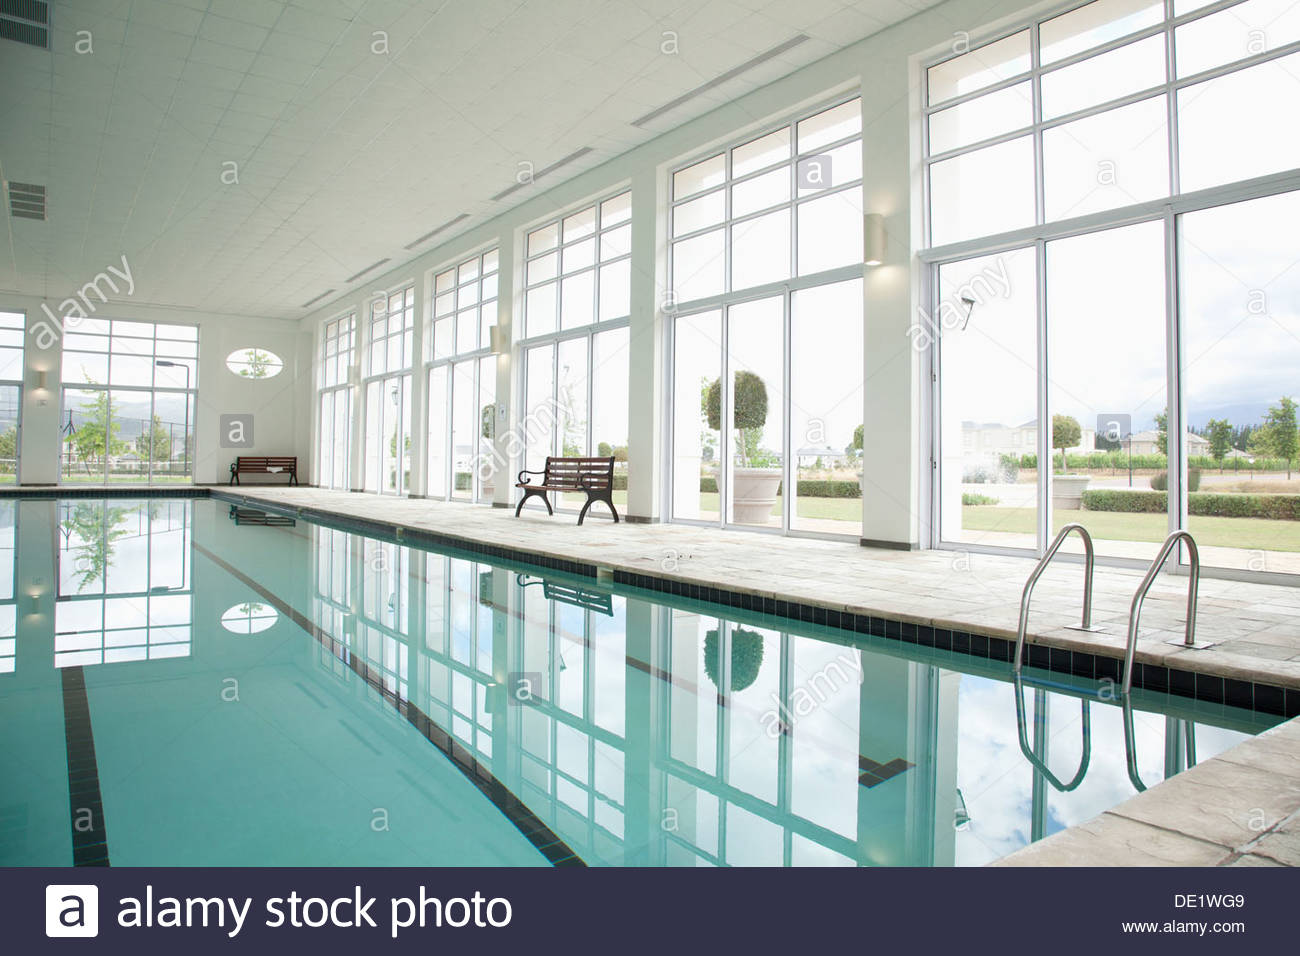 Indoor swimming pool - Stock Image